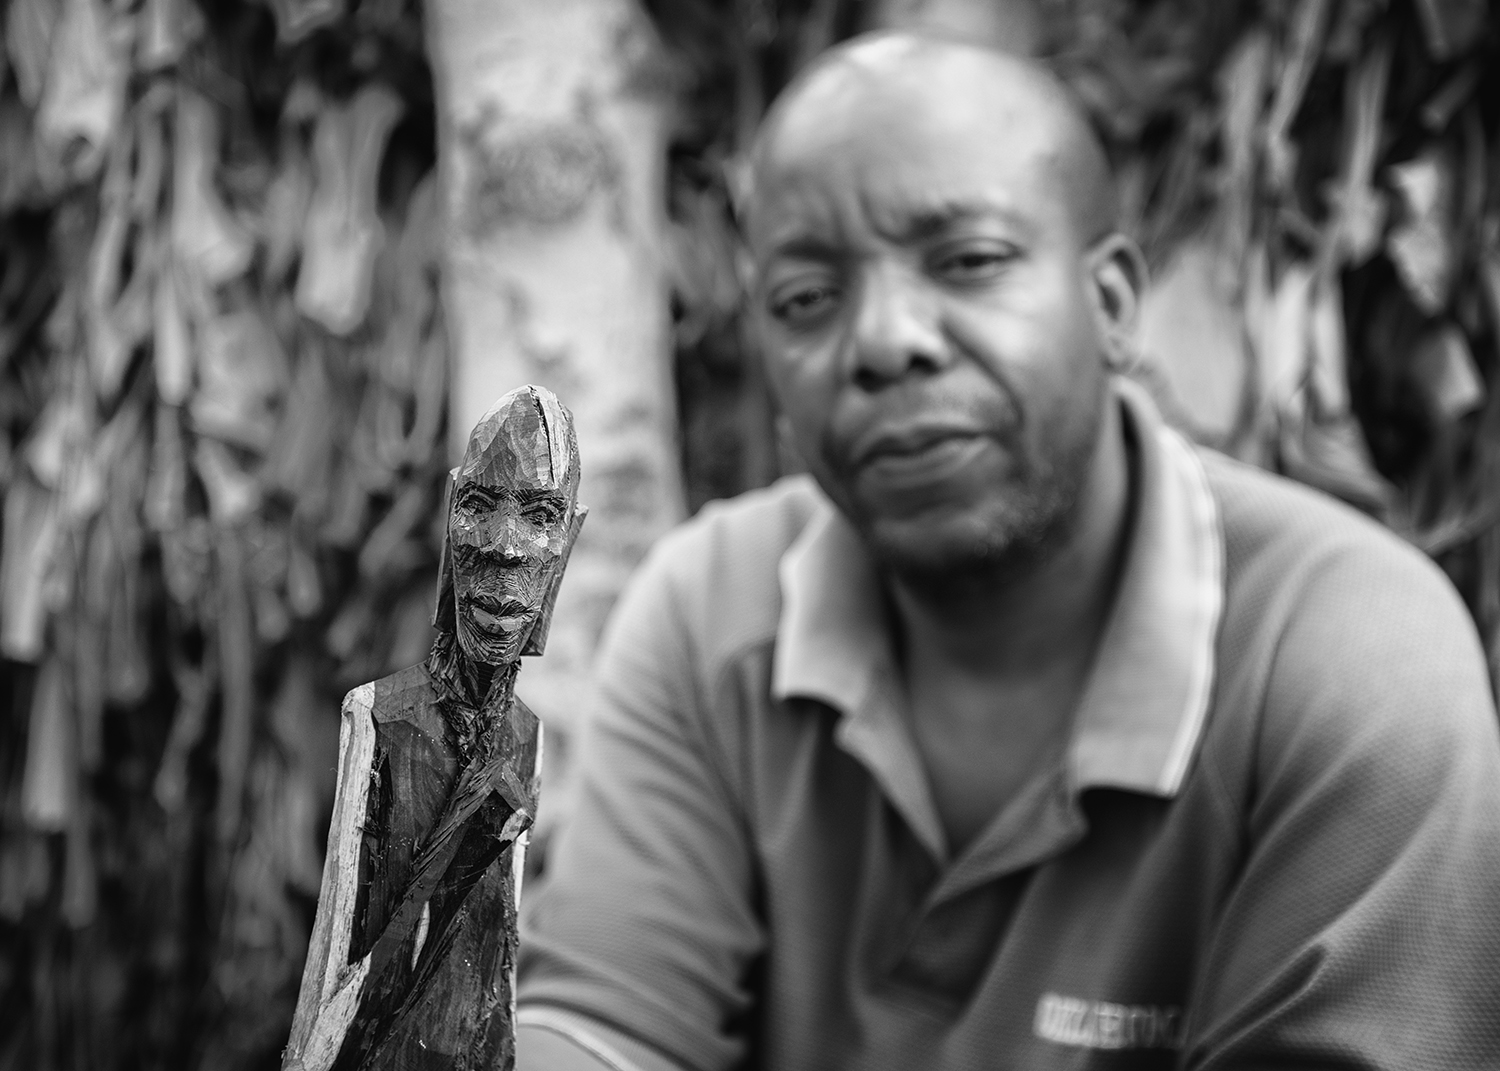 This man carves ebony figurines to make money to feed his family